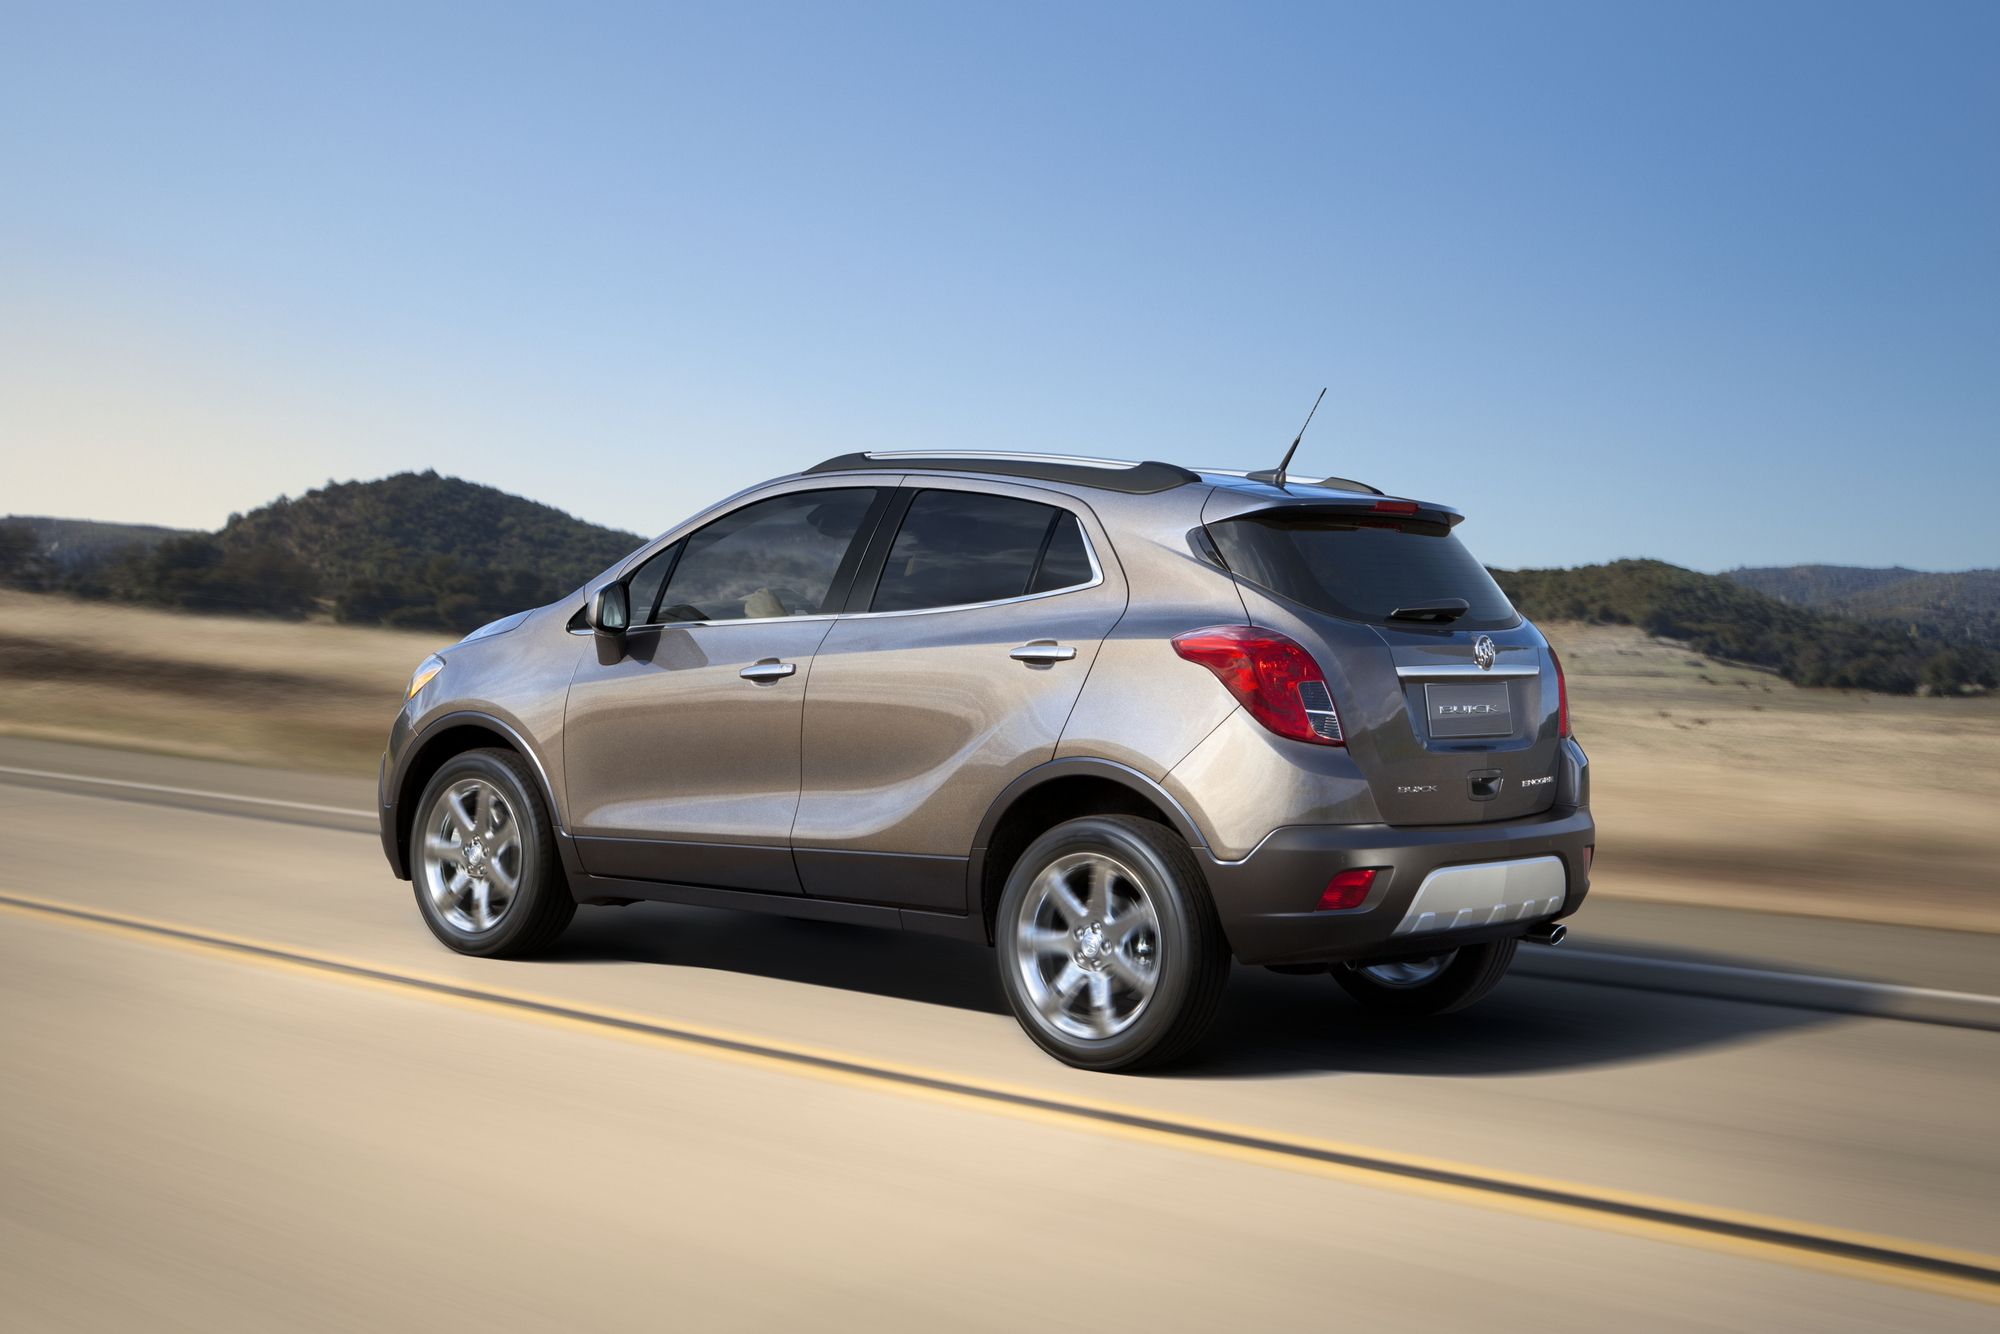 Chevrolet suv photo - 4